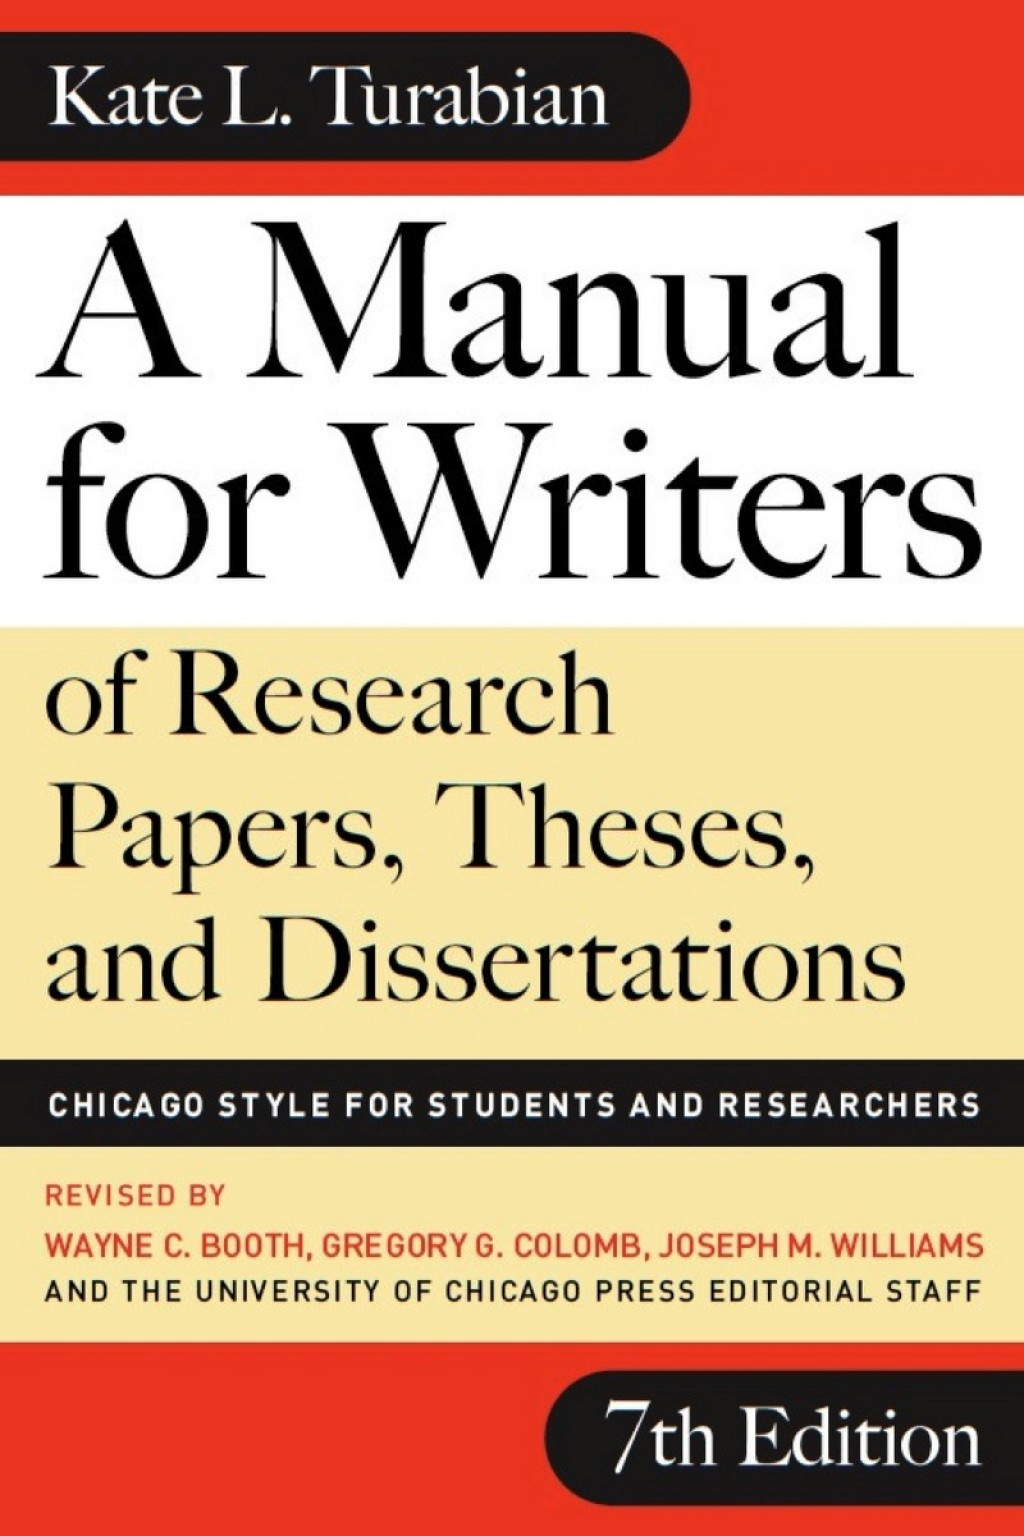 004 Research Paper Manual For Writers Of Papers Theses And Dissertations Turabian Amazing A Pdf Large